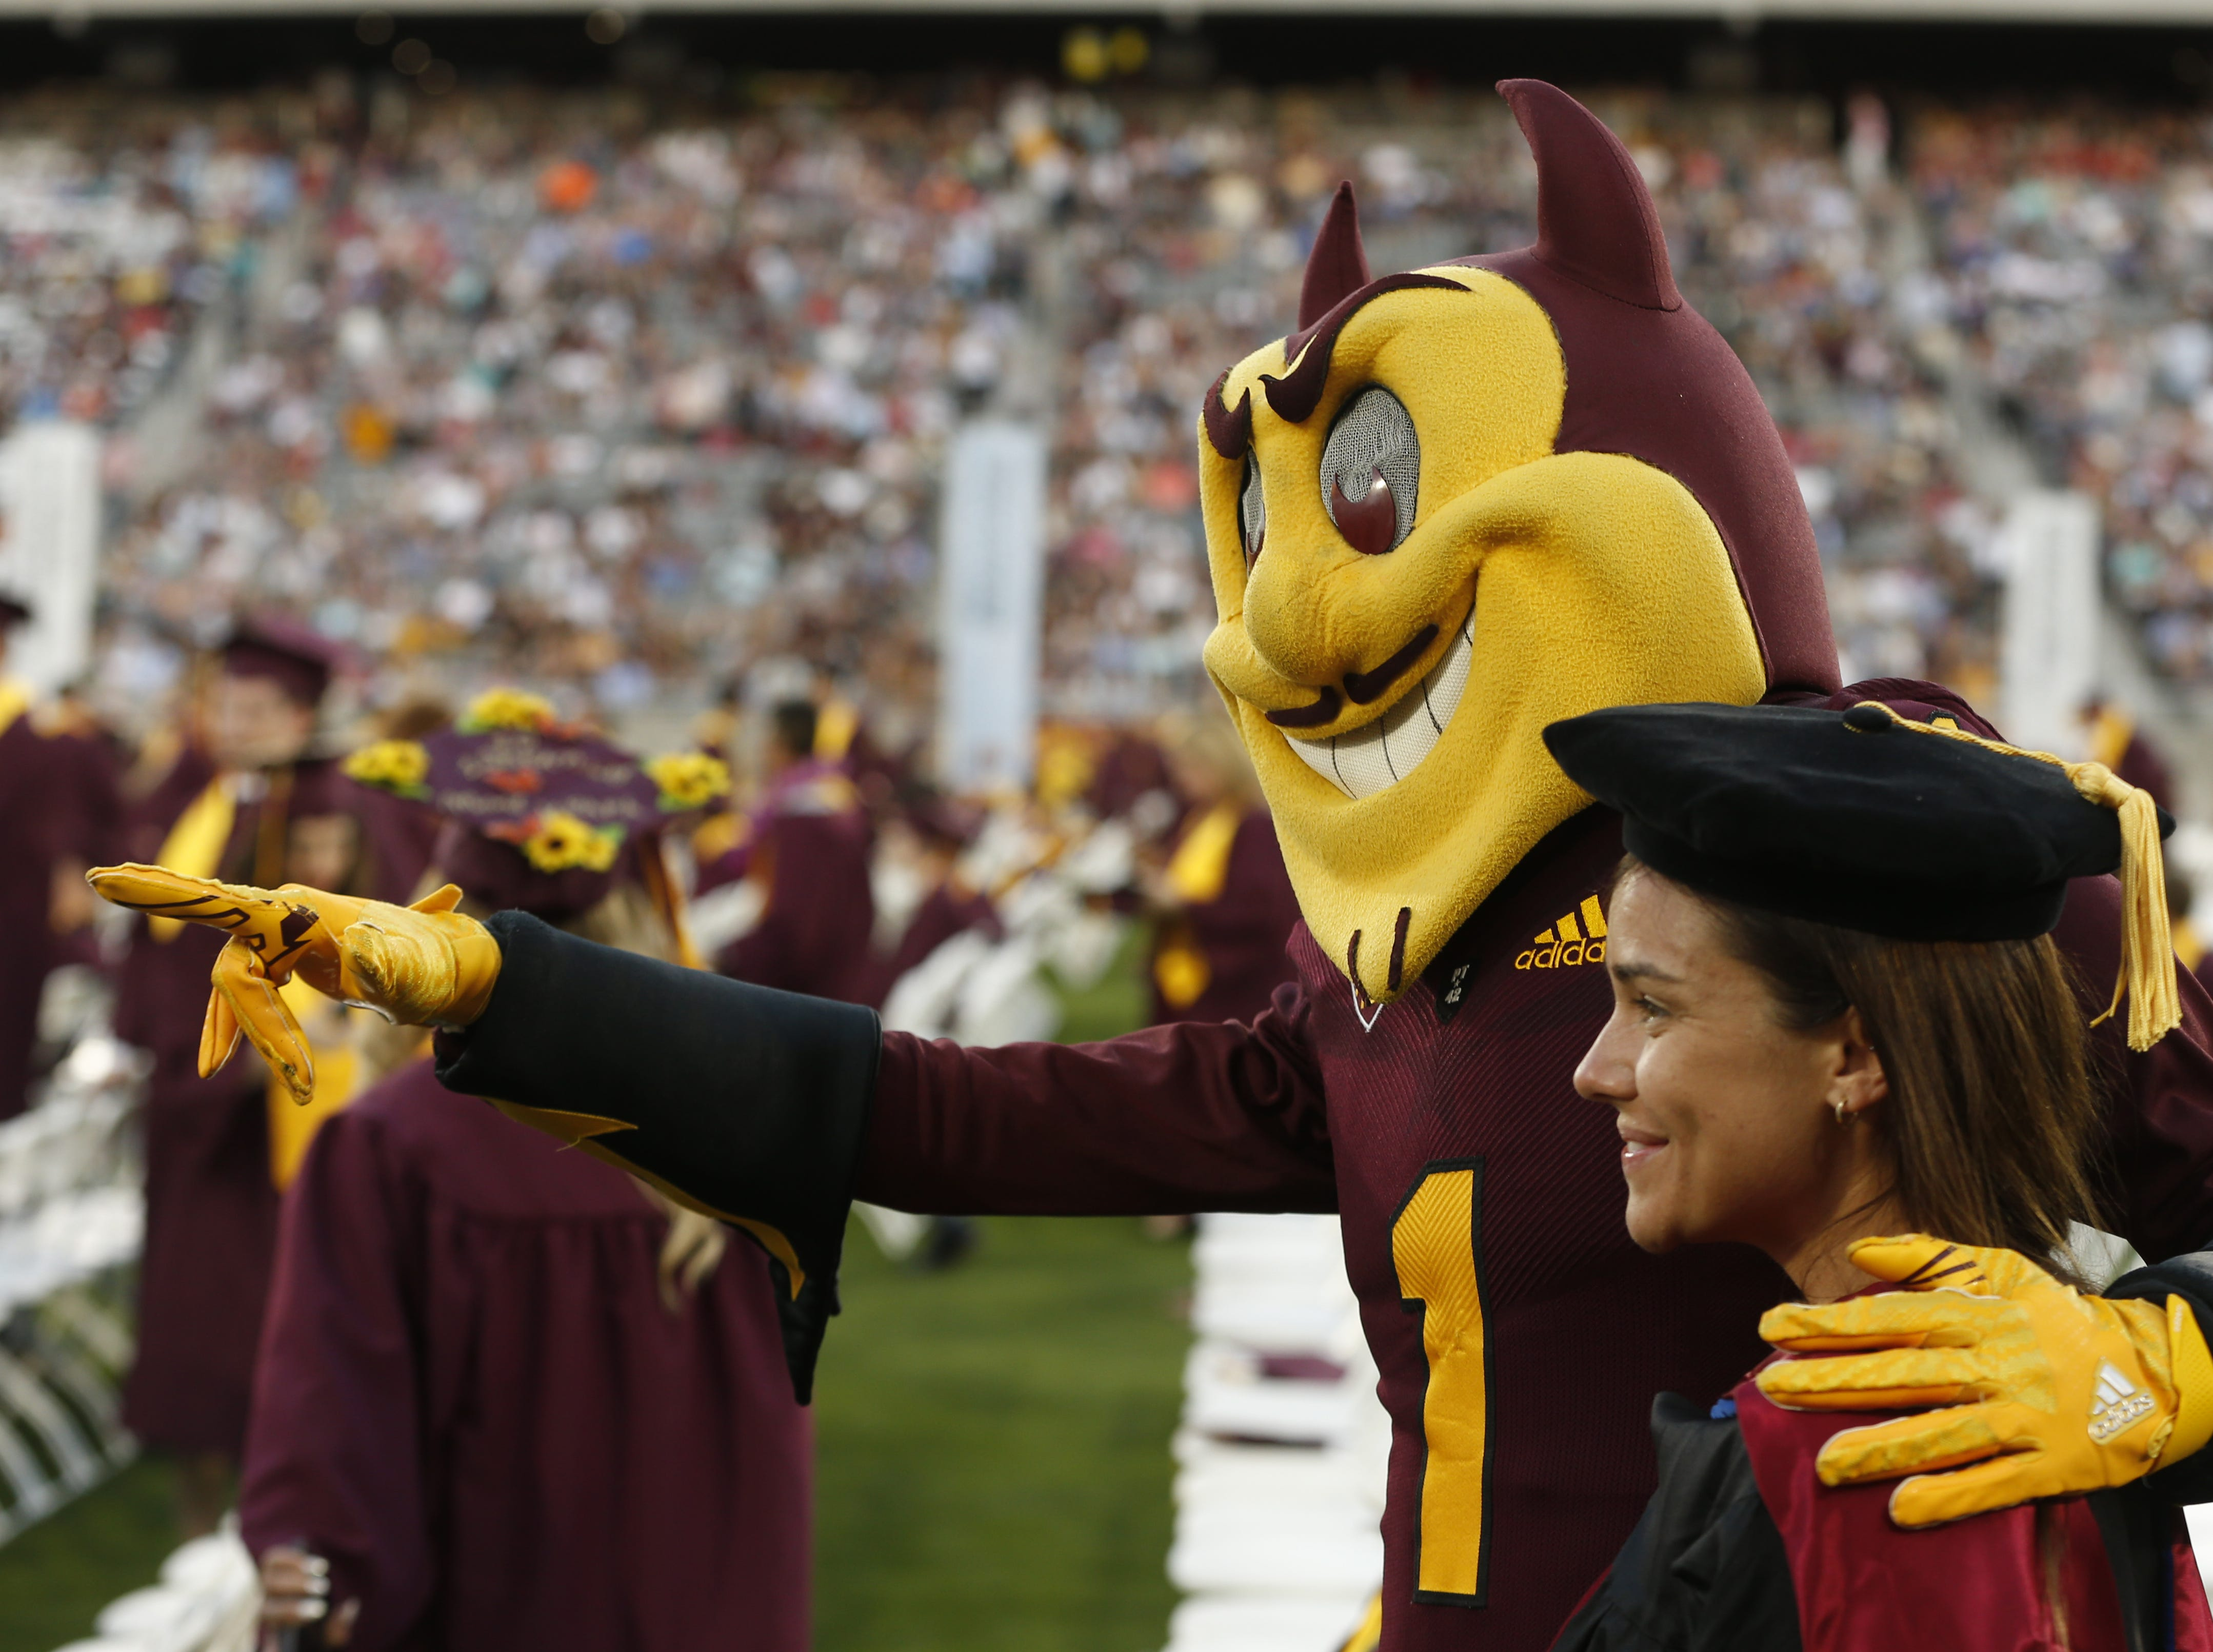 Sparky poses for pictures during ASU's Undergraduate Commencement at Sun Devil Stadium in Tempe, Ariz. on May 6, 2019.